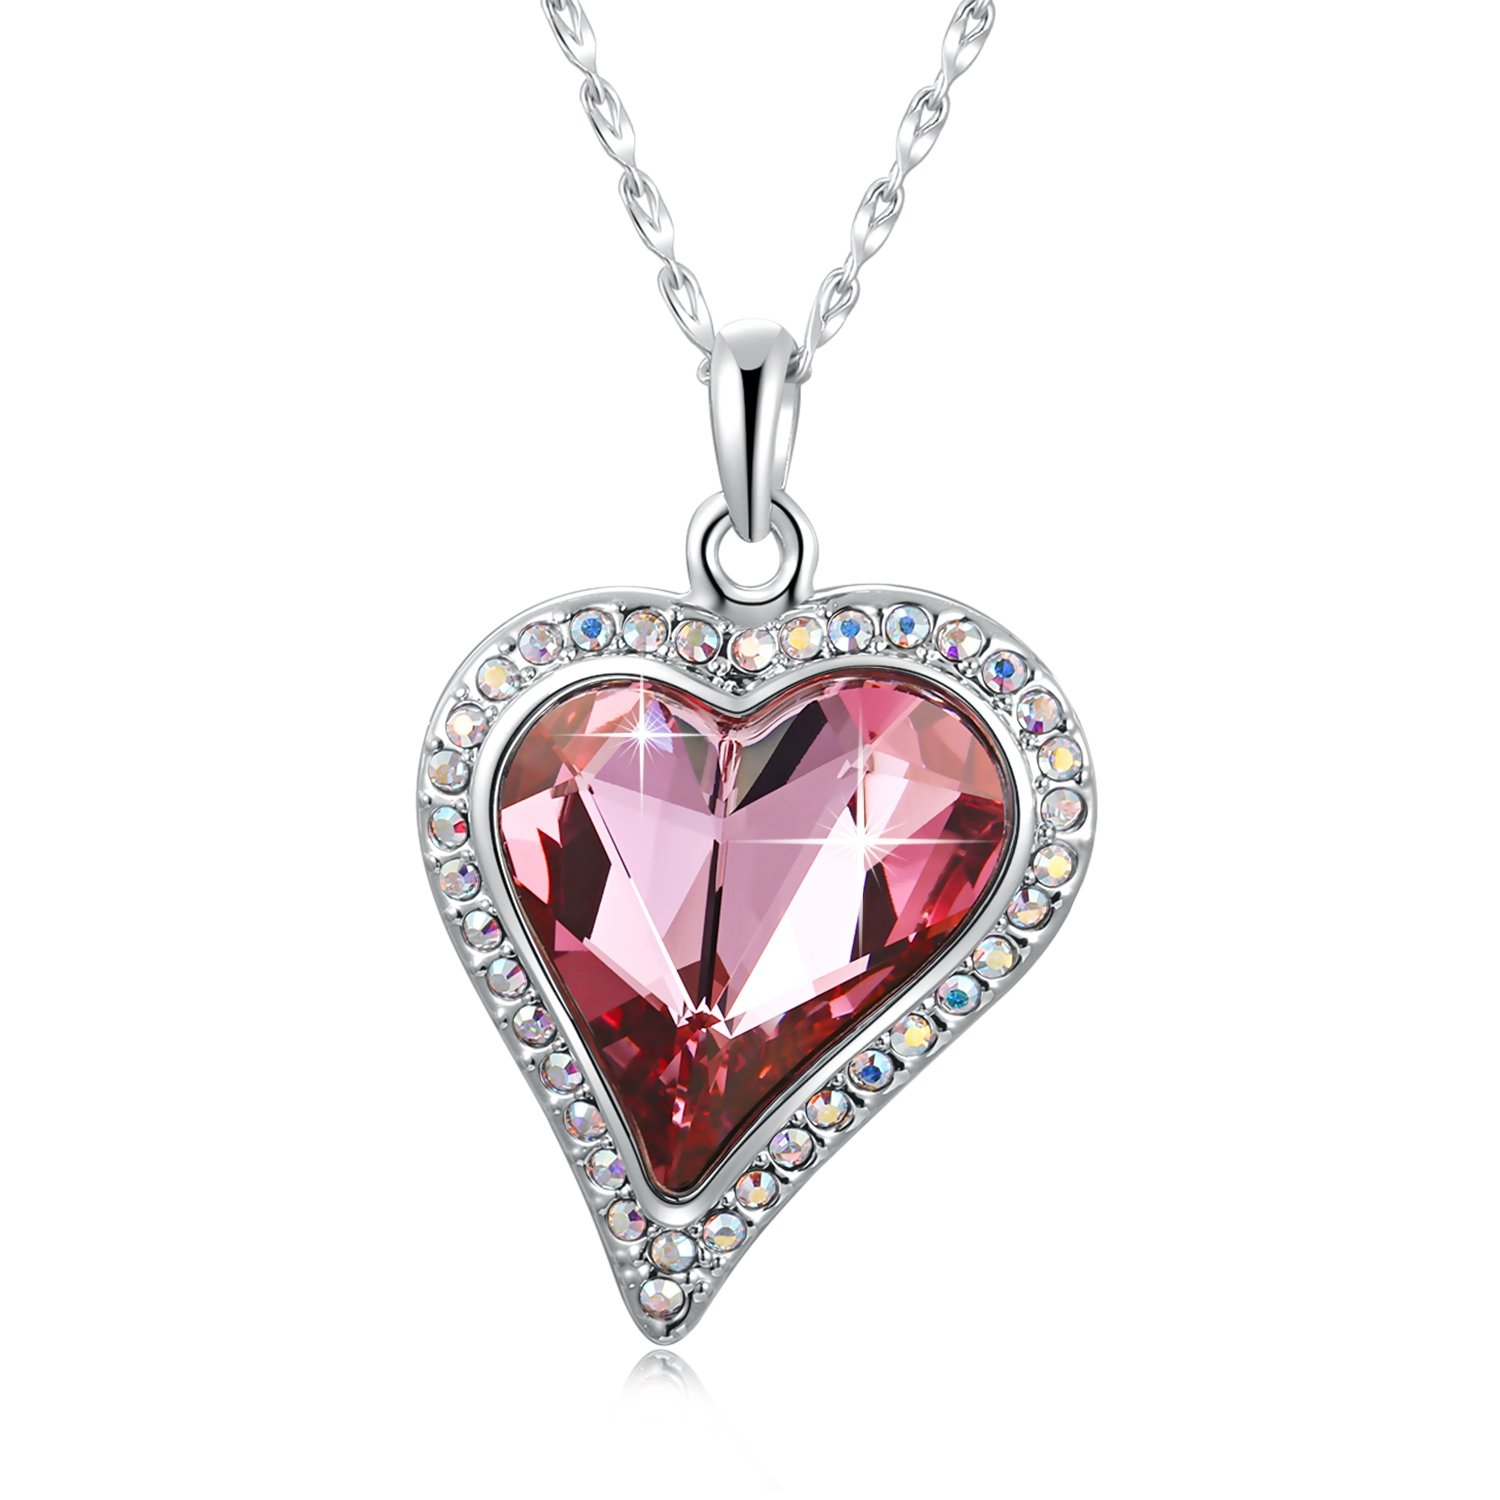 "SUE'S SECRET Forever Love to Your Heart Jewelry Pendant Necklace with Swarovski Crystal, 18"", Rose Red"